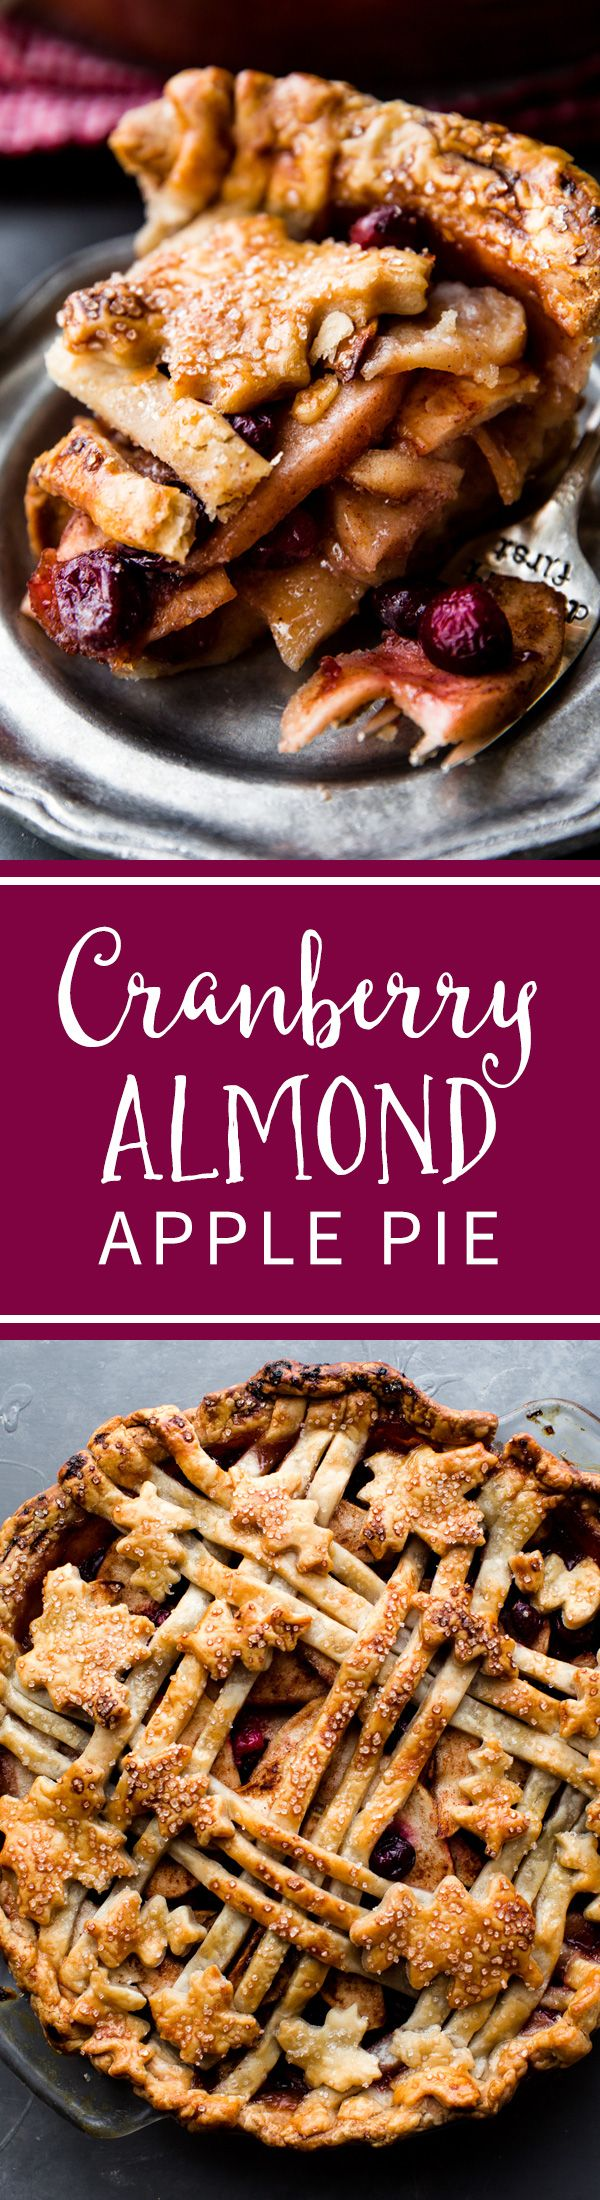 This cranberry almond apple pie is the Thanksgiving dessert that everyone will be talking about! The flavor is divine and it couldn't be easier to make.